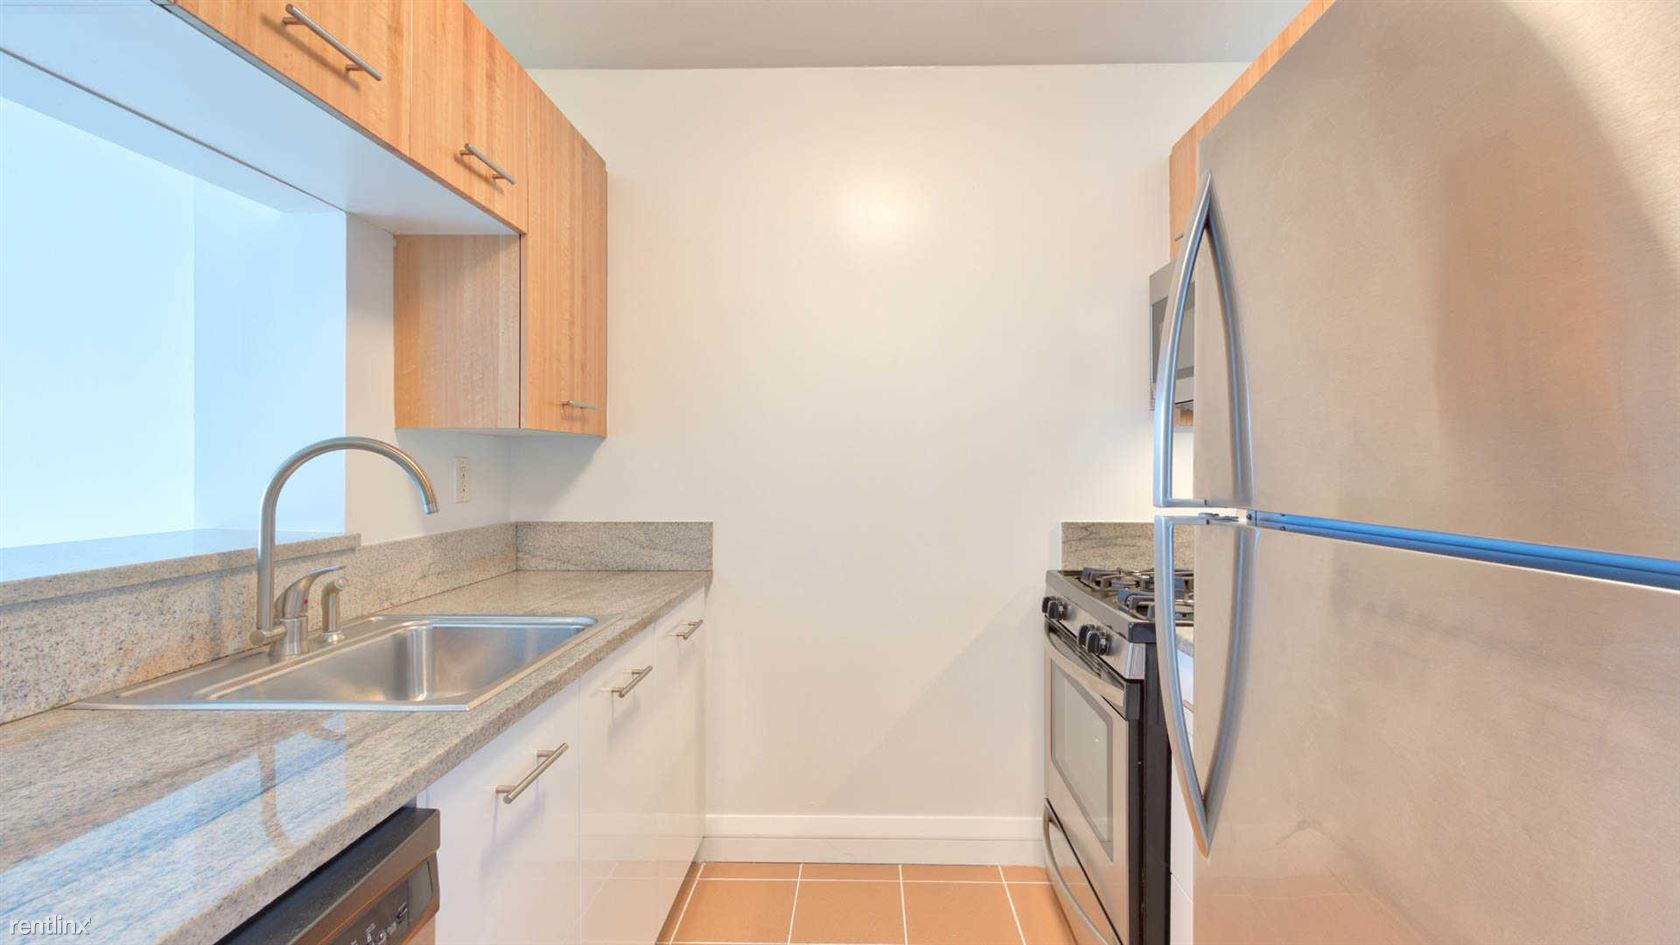 800 6th Ave #5N photo #1